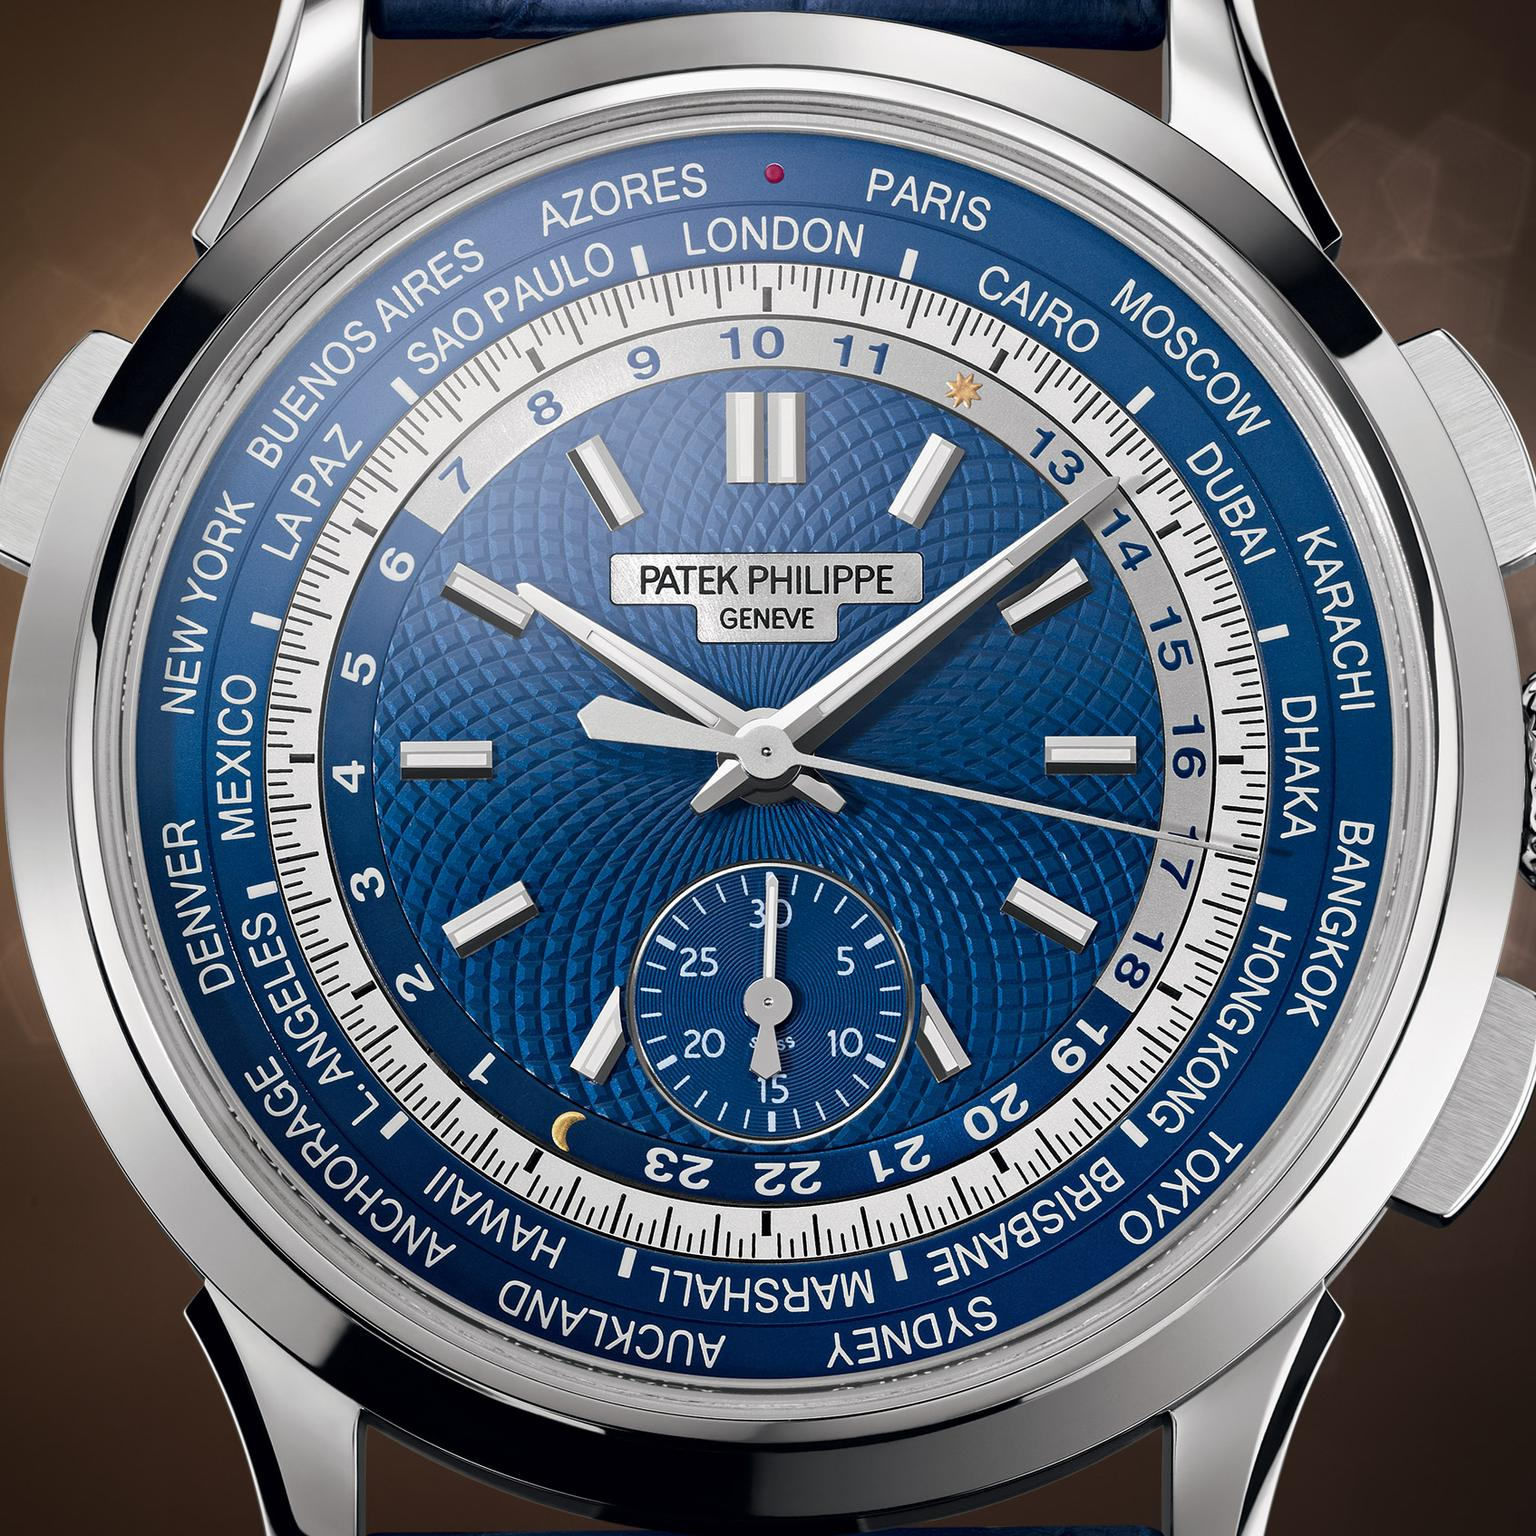 Patek Philippe World Time Chronograph blue watch